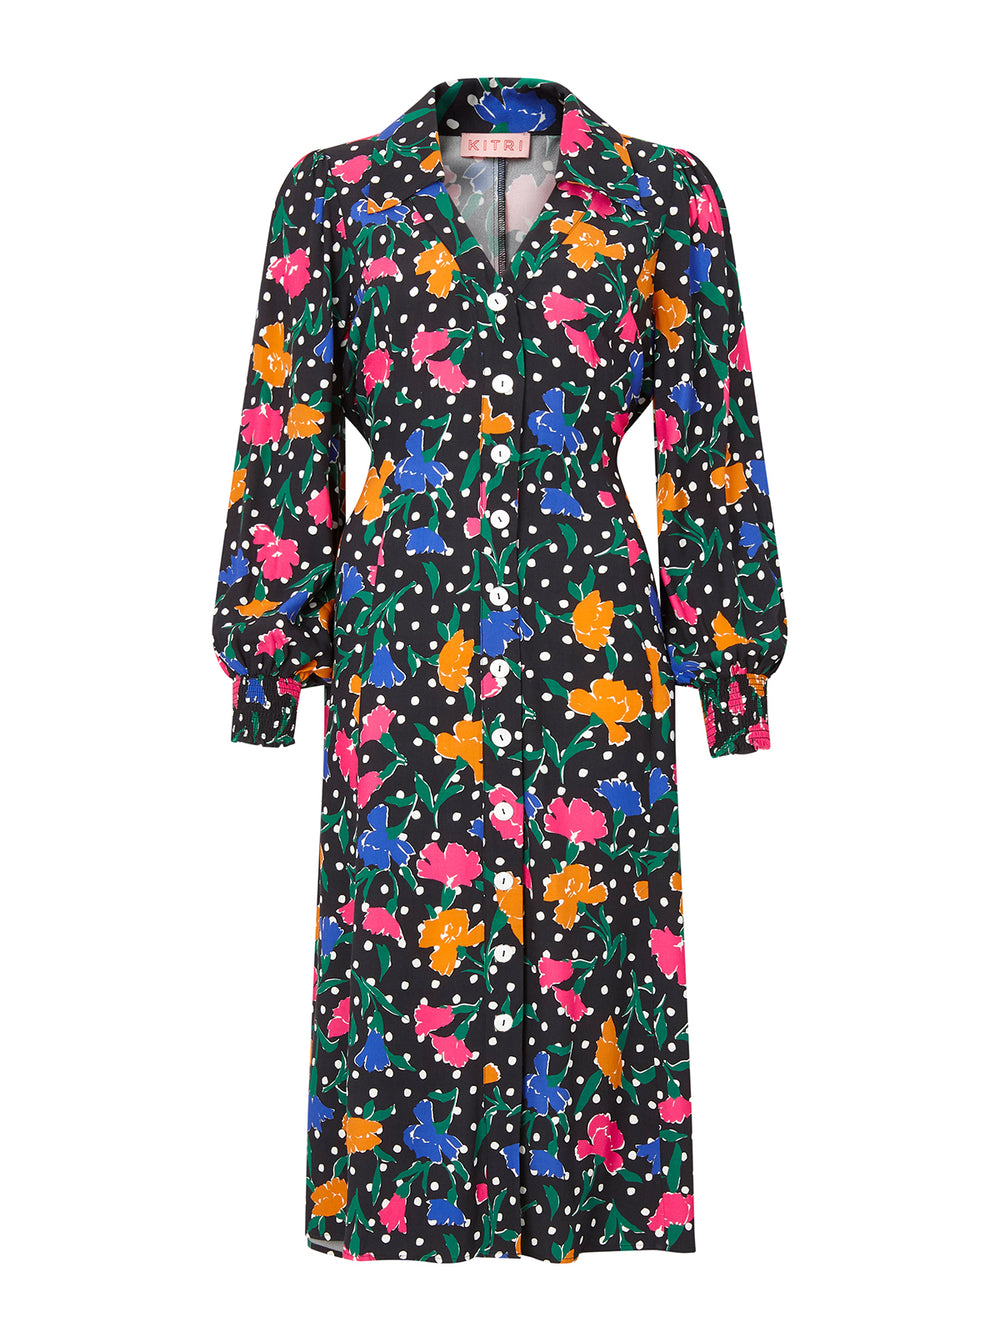 Sylvie Floral Polka Dot Shirt Dress